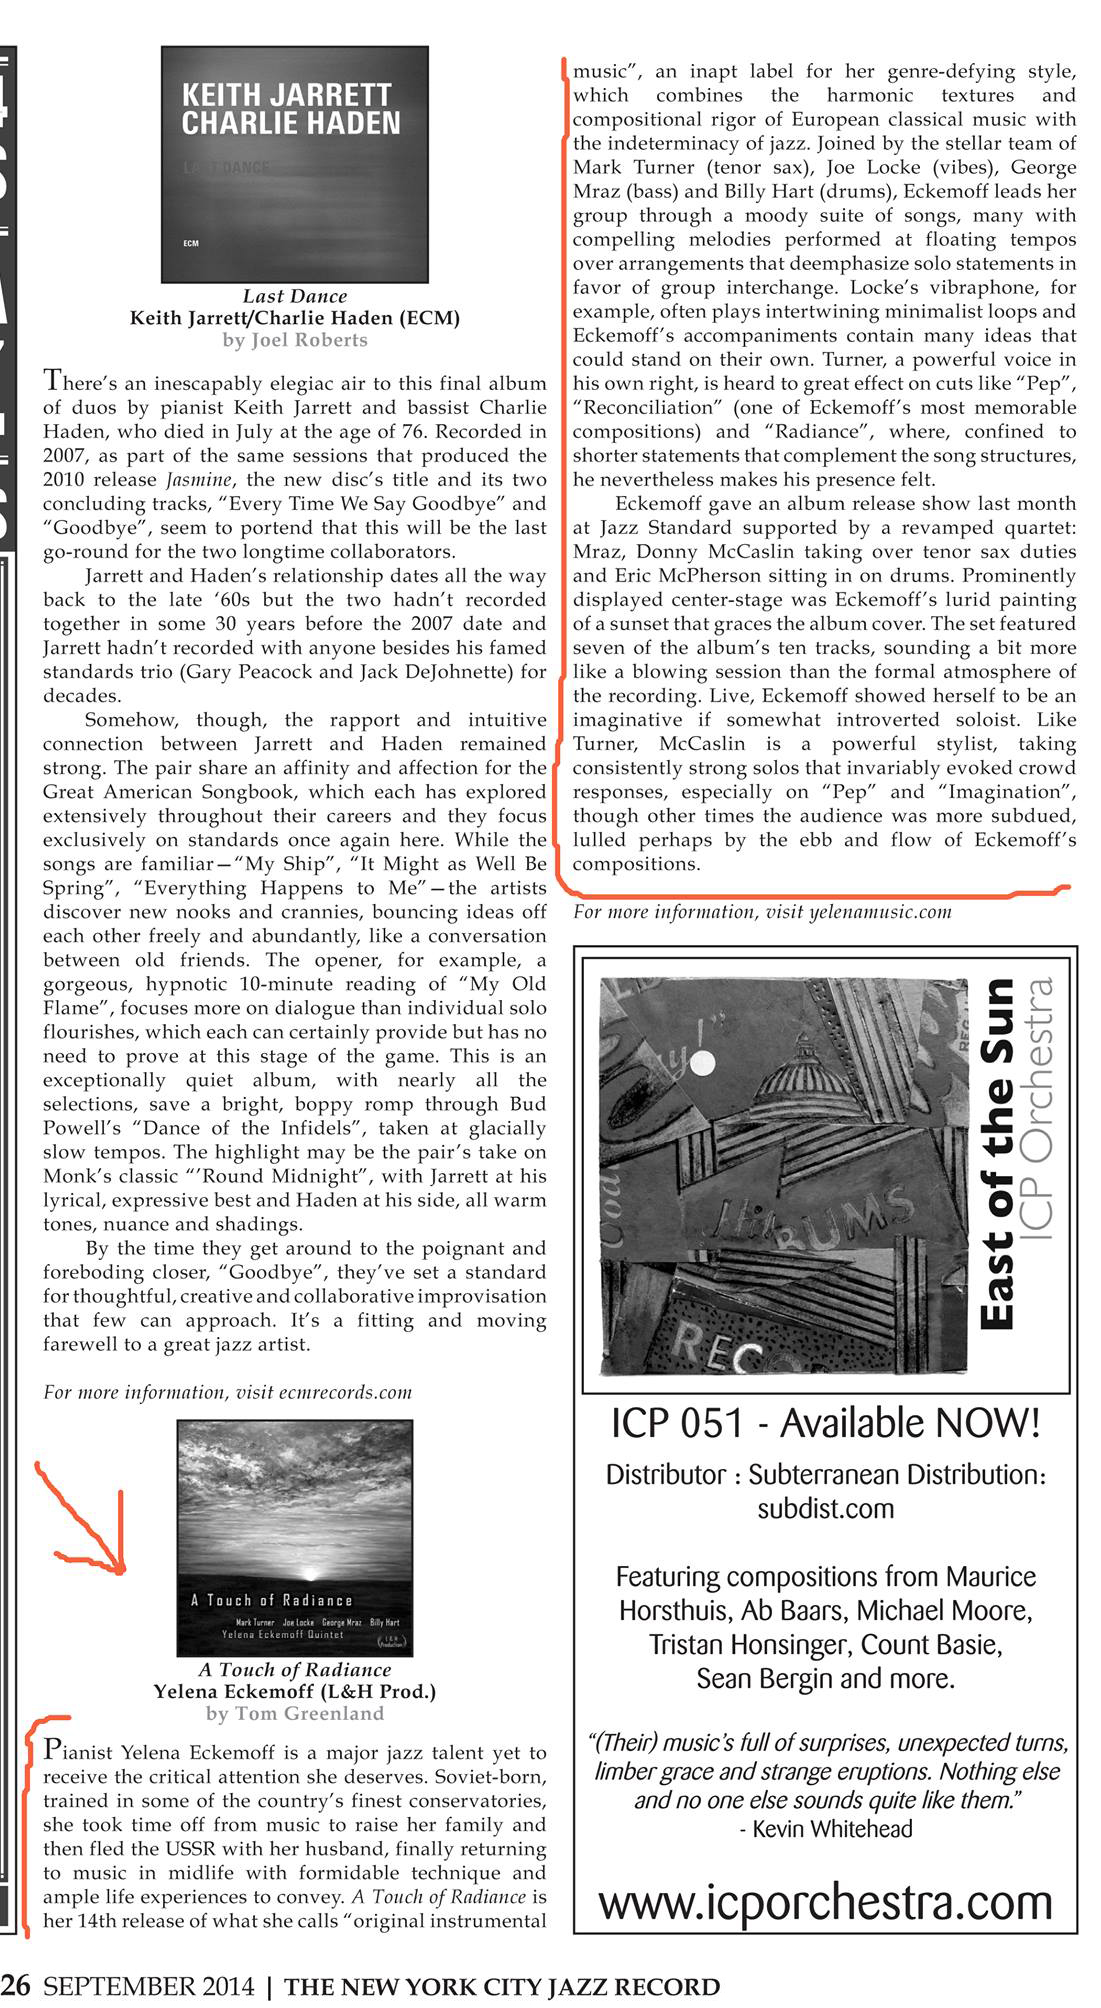 A Touch of Radiance review in NYC Jazz Record image